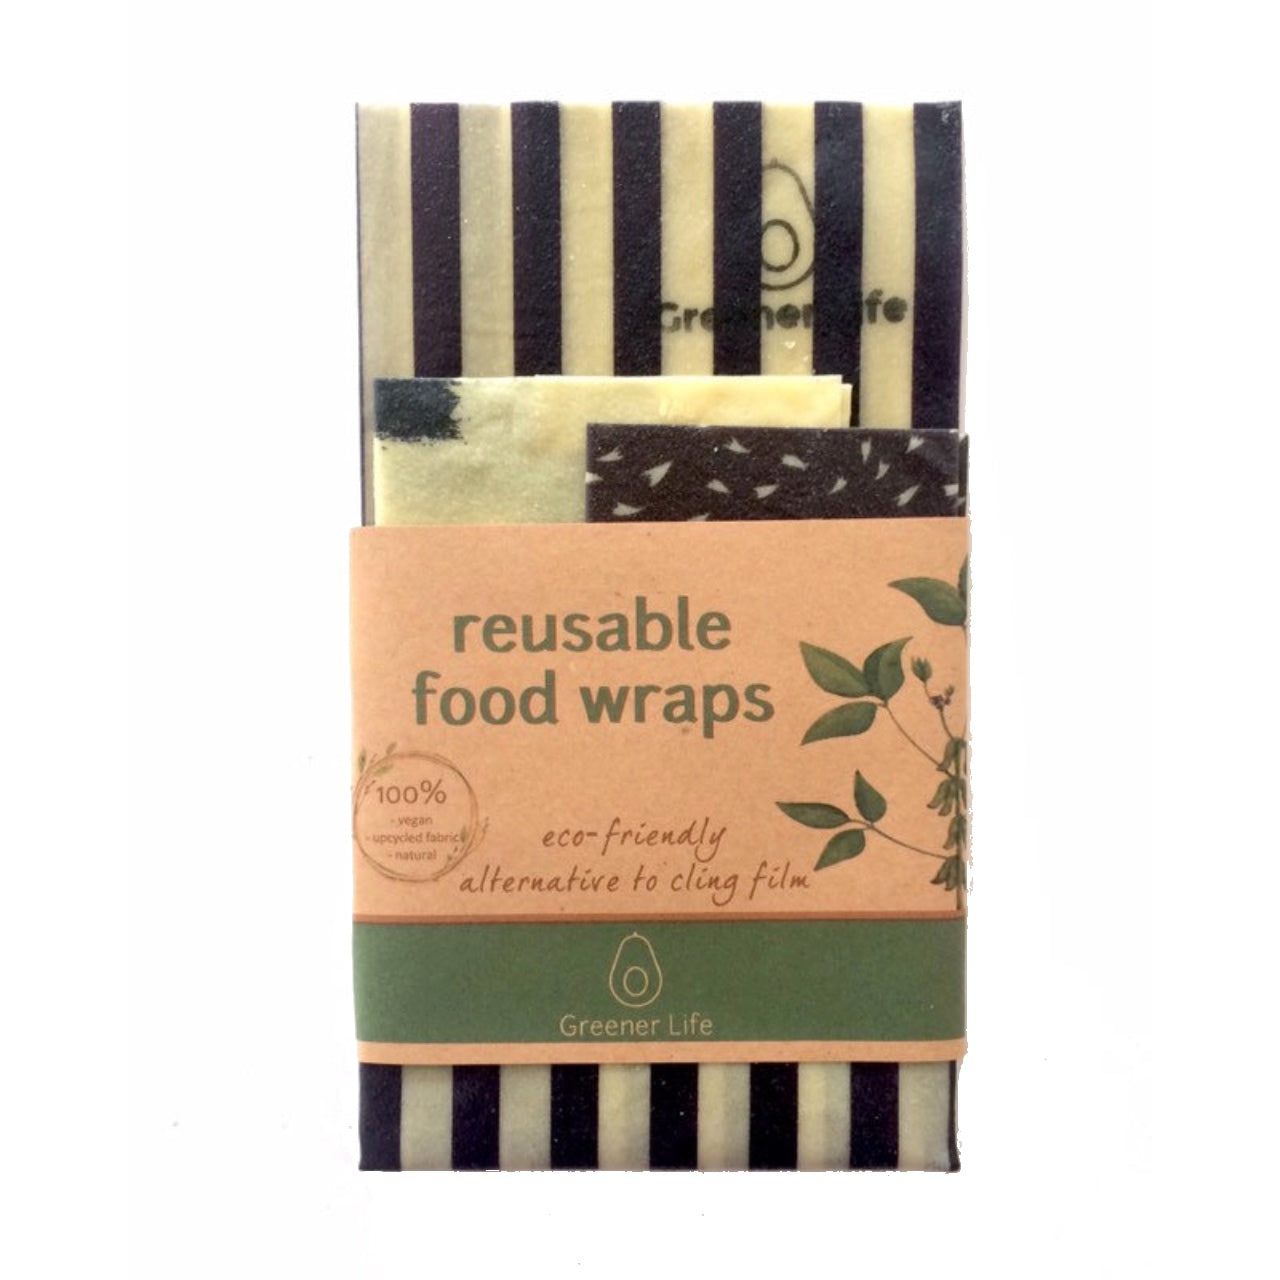 Greener Life Reusable Food Wrap 3 pack